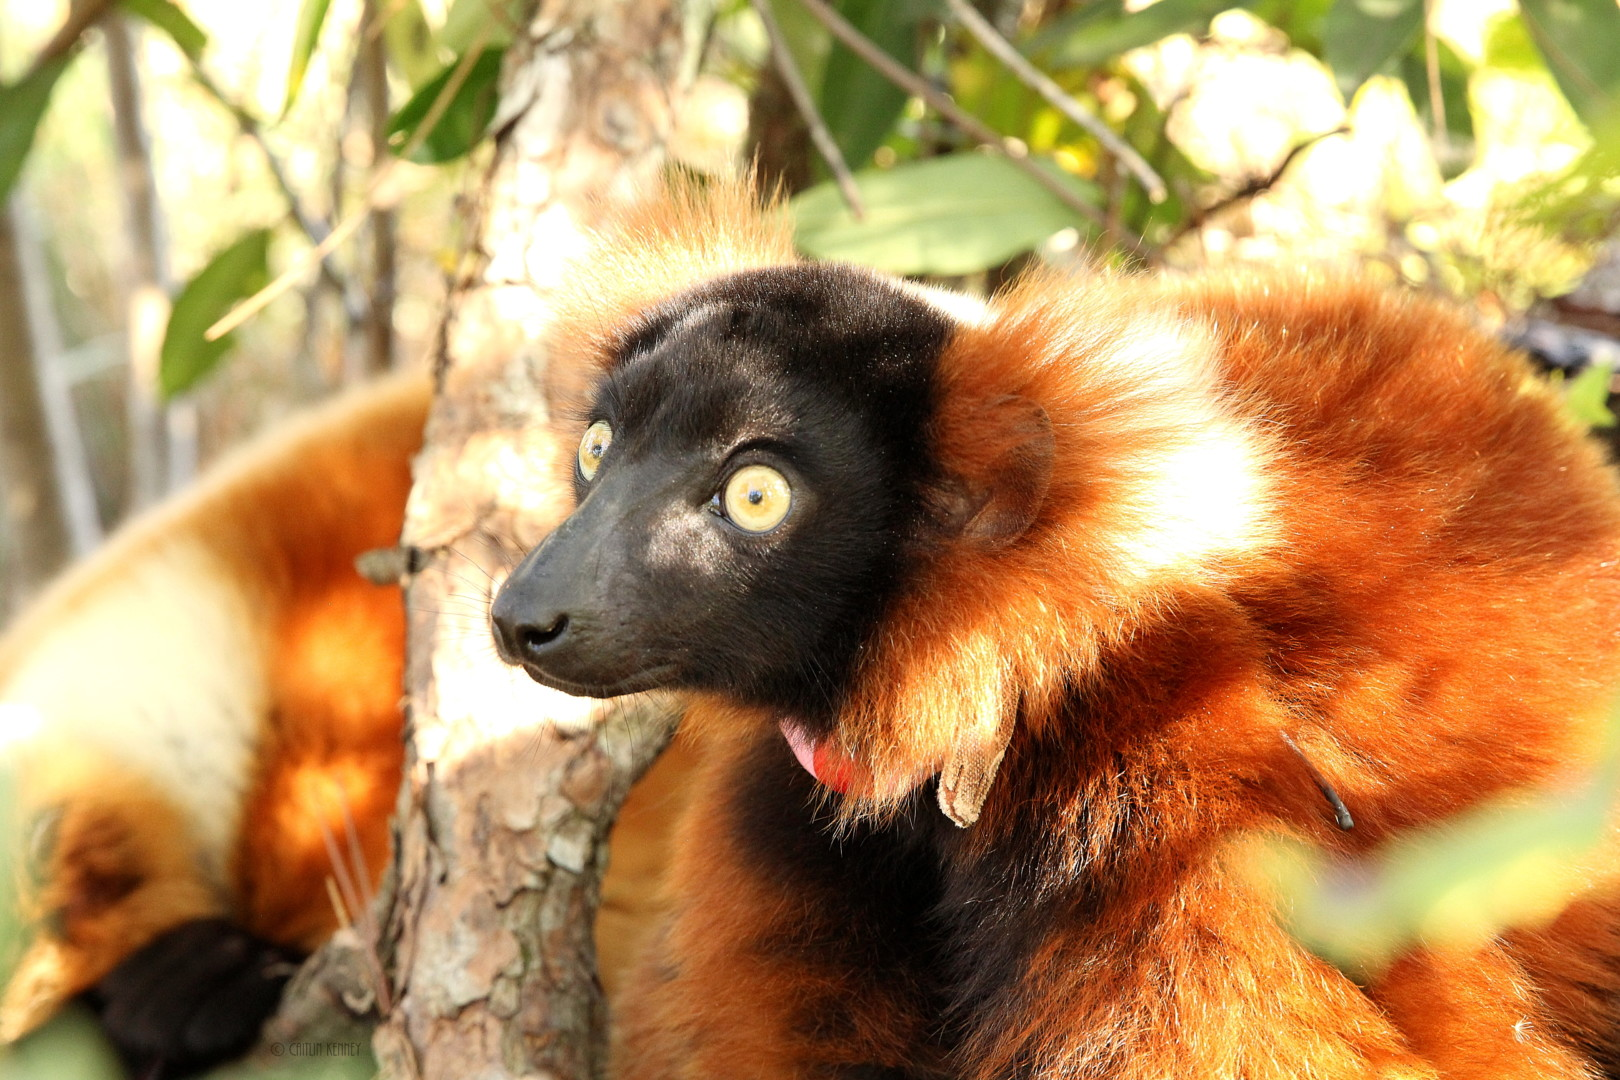 Close up of young Red Ruffed Lemur in the trees in Myakka City, FL